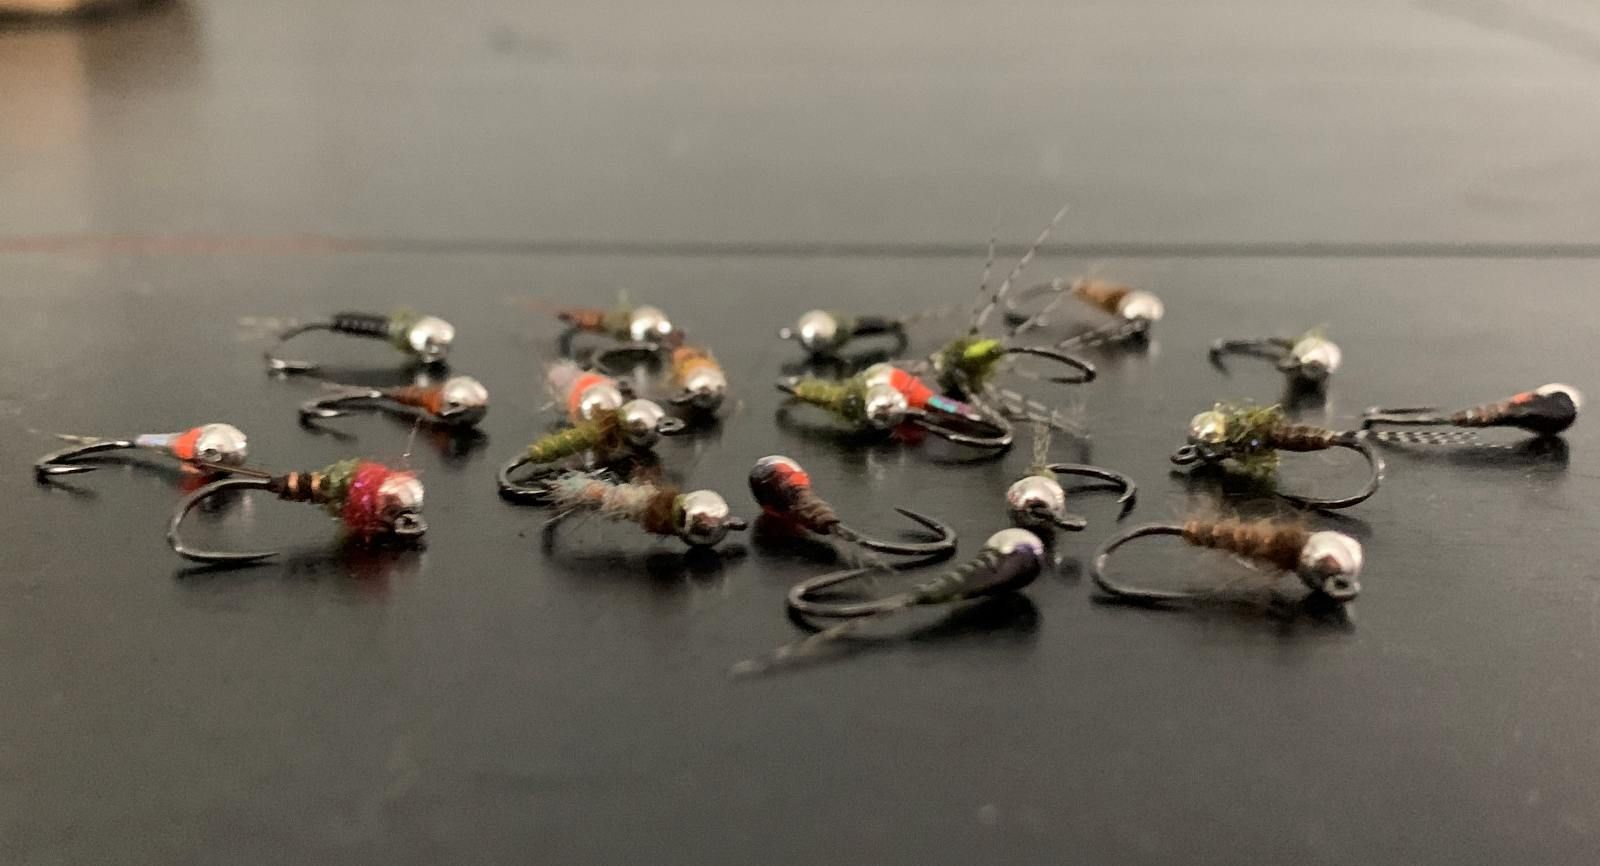 Nymphs Used in Euro Nymphing Fly Fishing